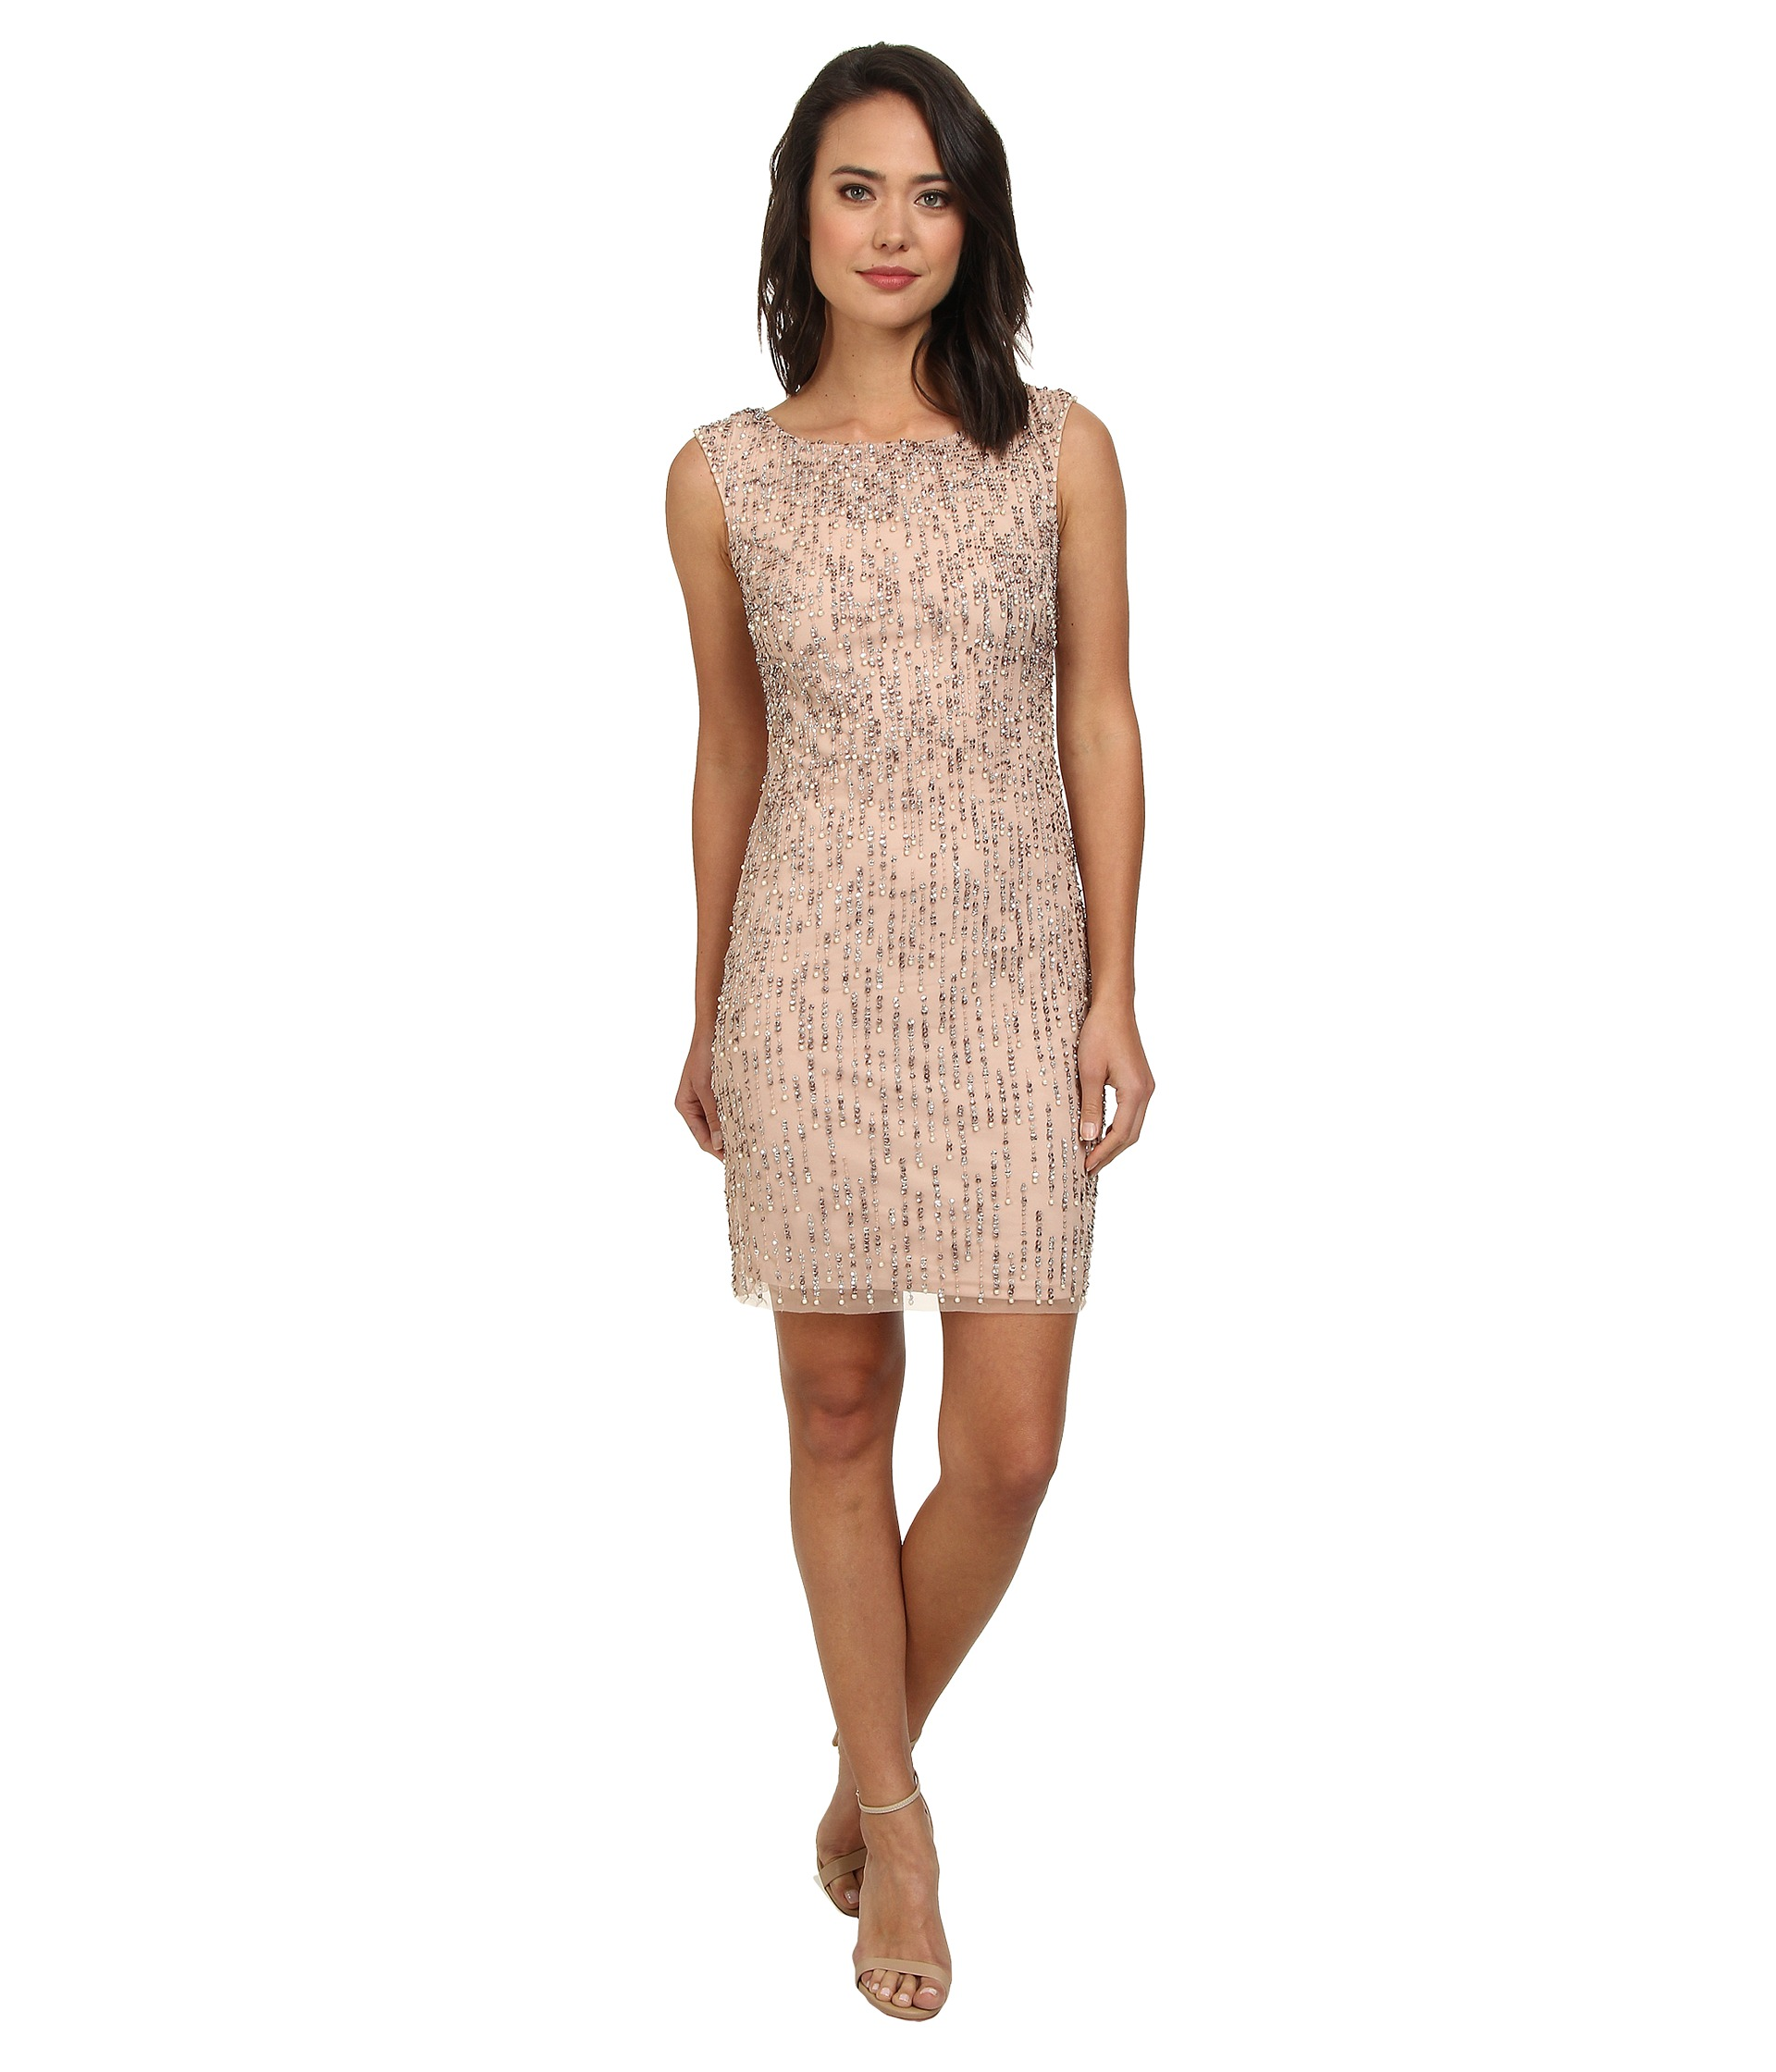 Adrianna Papell Sleeveless Fully Beaded Cocktail Dress Blush - 6pm.com